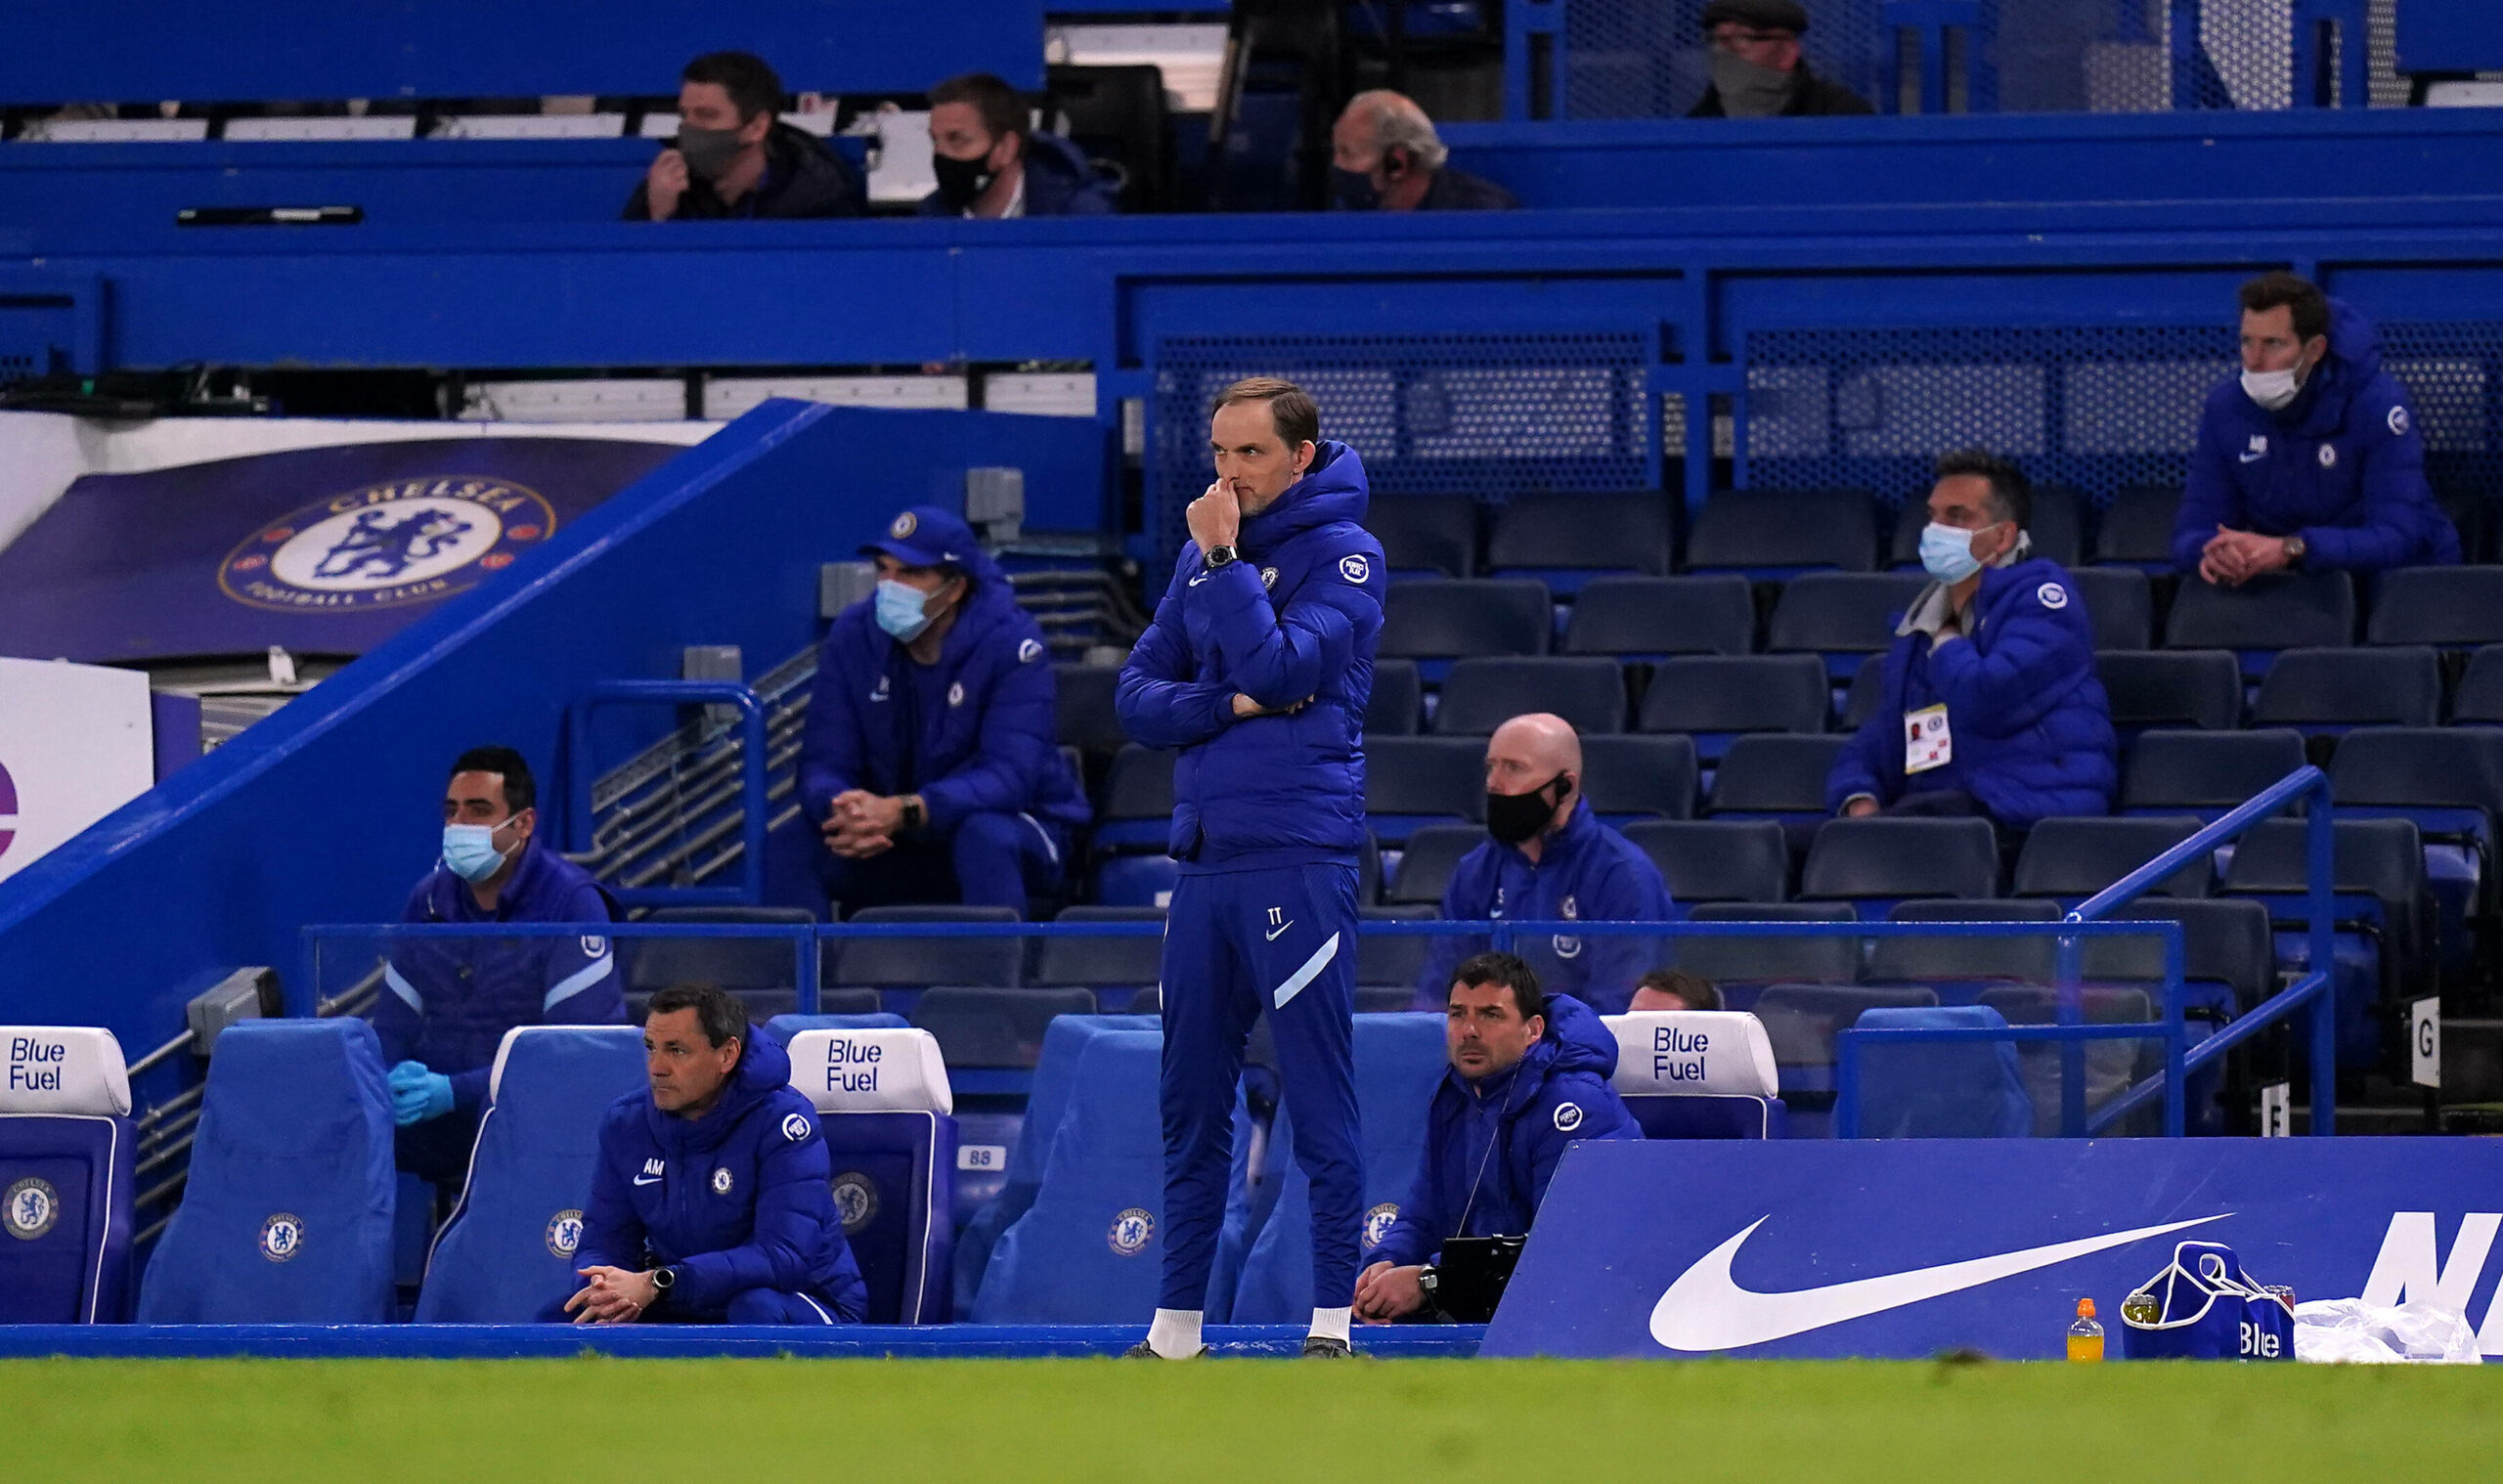 Success without goals: an unsustainable future for Tuchel and Chelsea